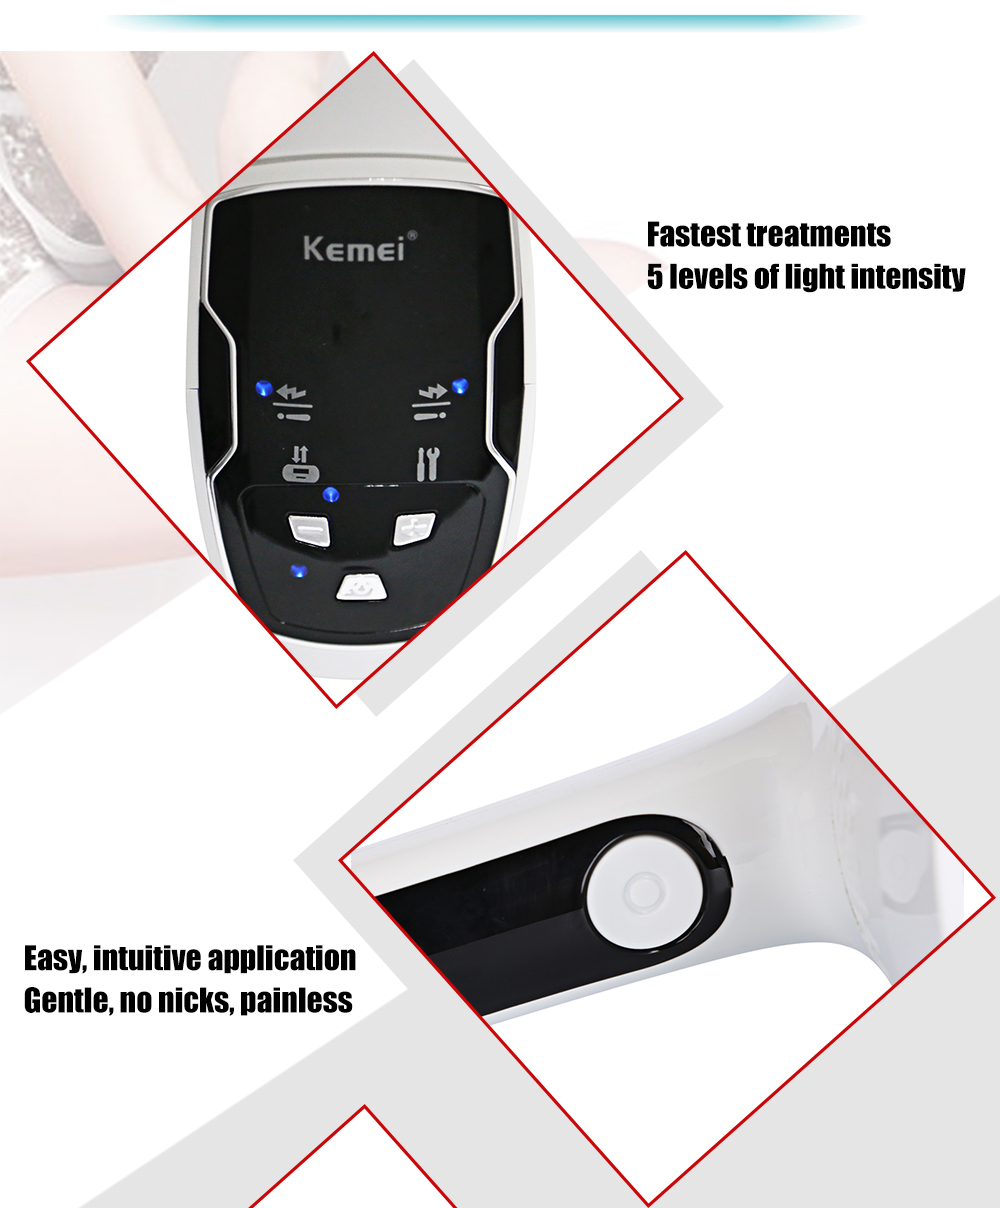 Kemei KM - 6812 Photon Laser Painless Permanent Hair Remover Epilator